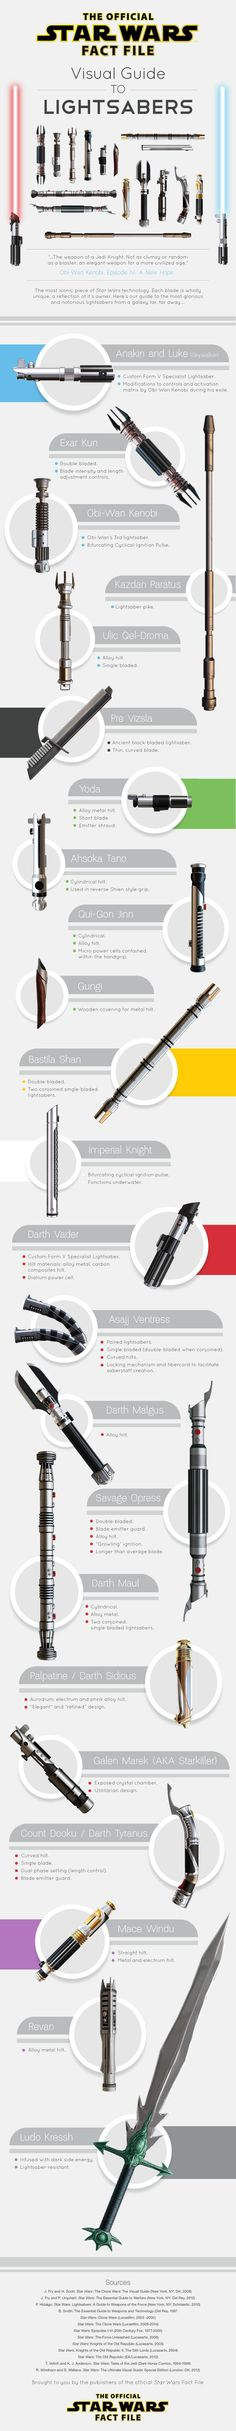 Know your lightsaber Star Wars